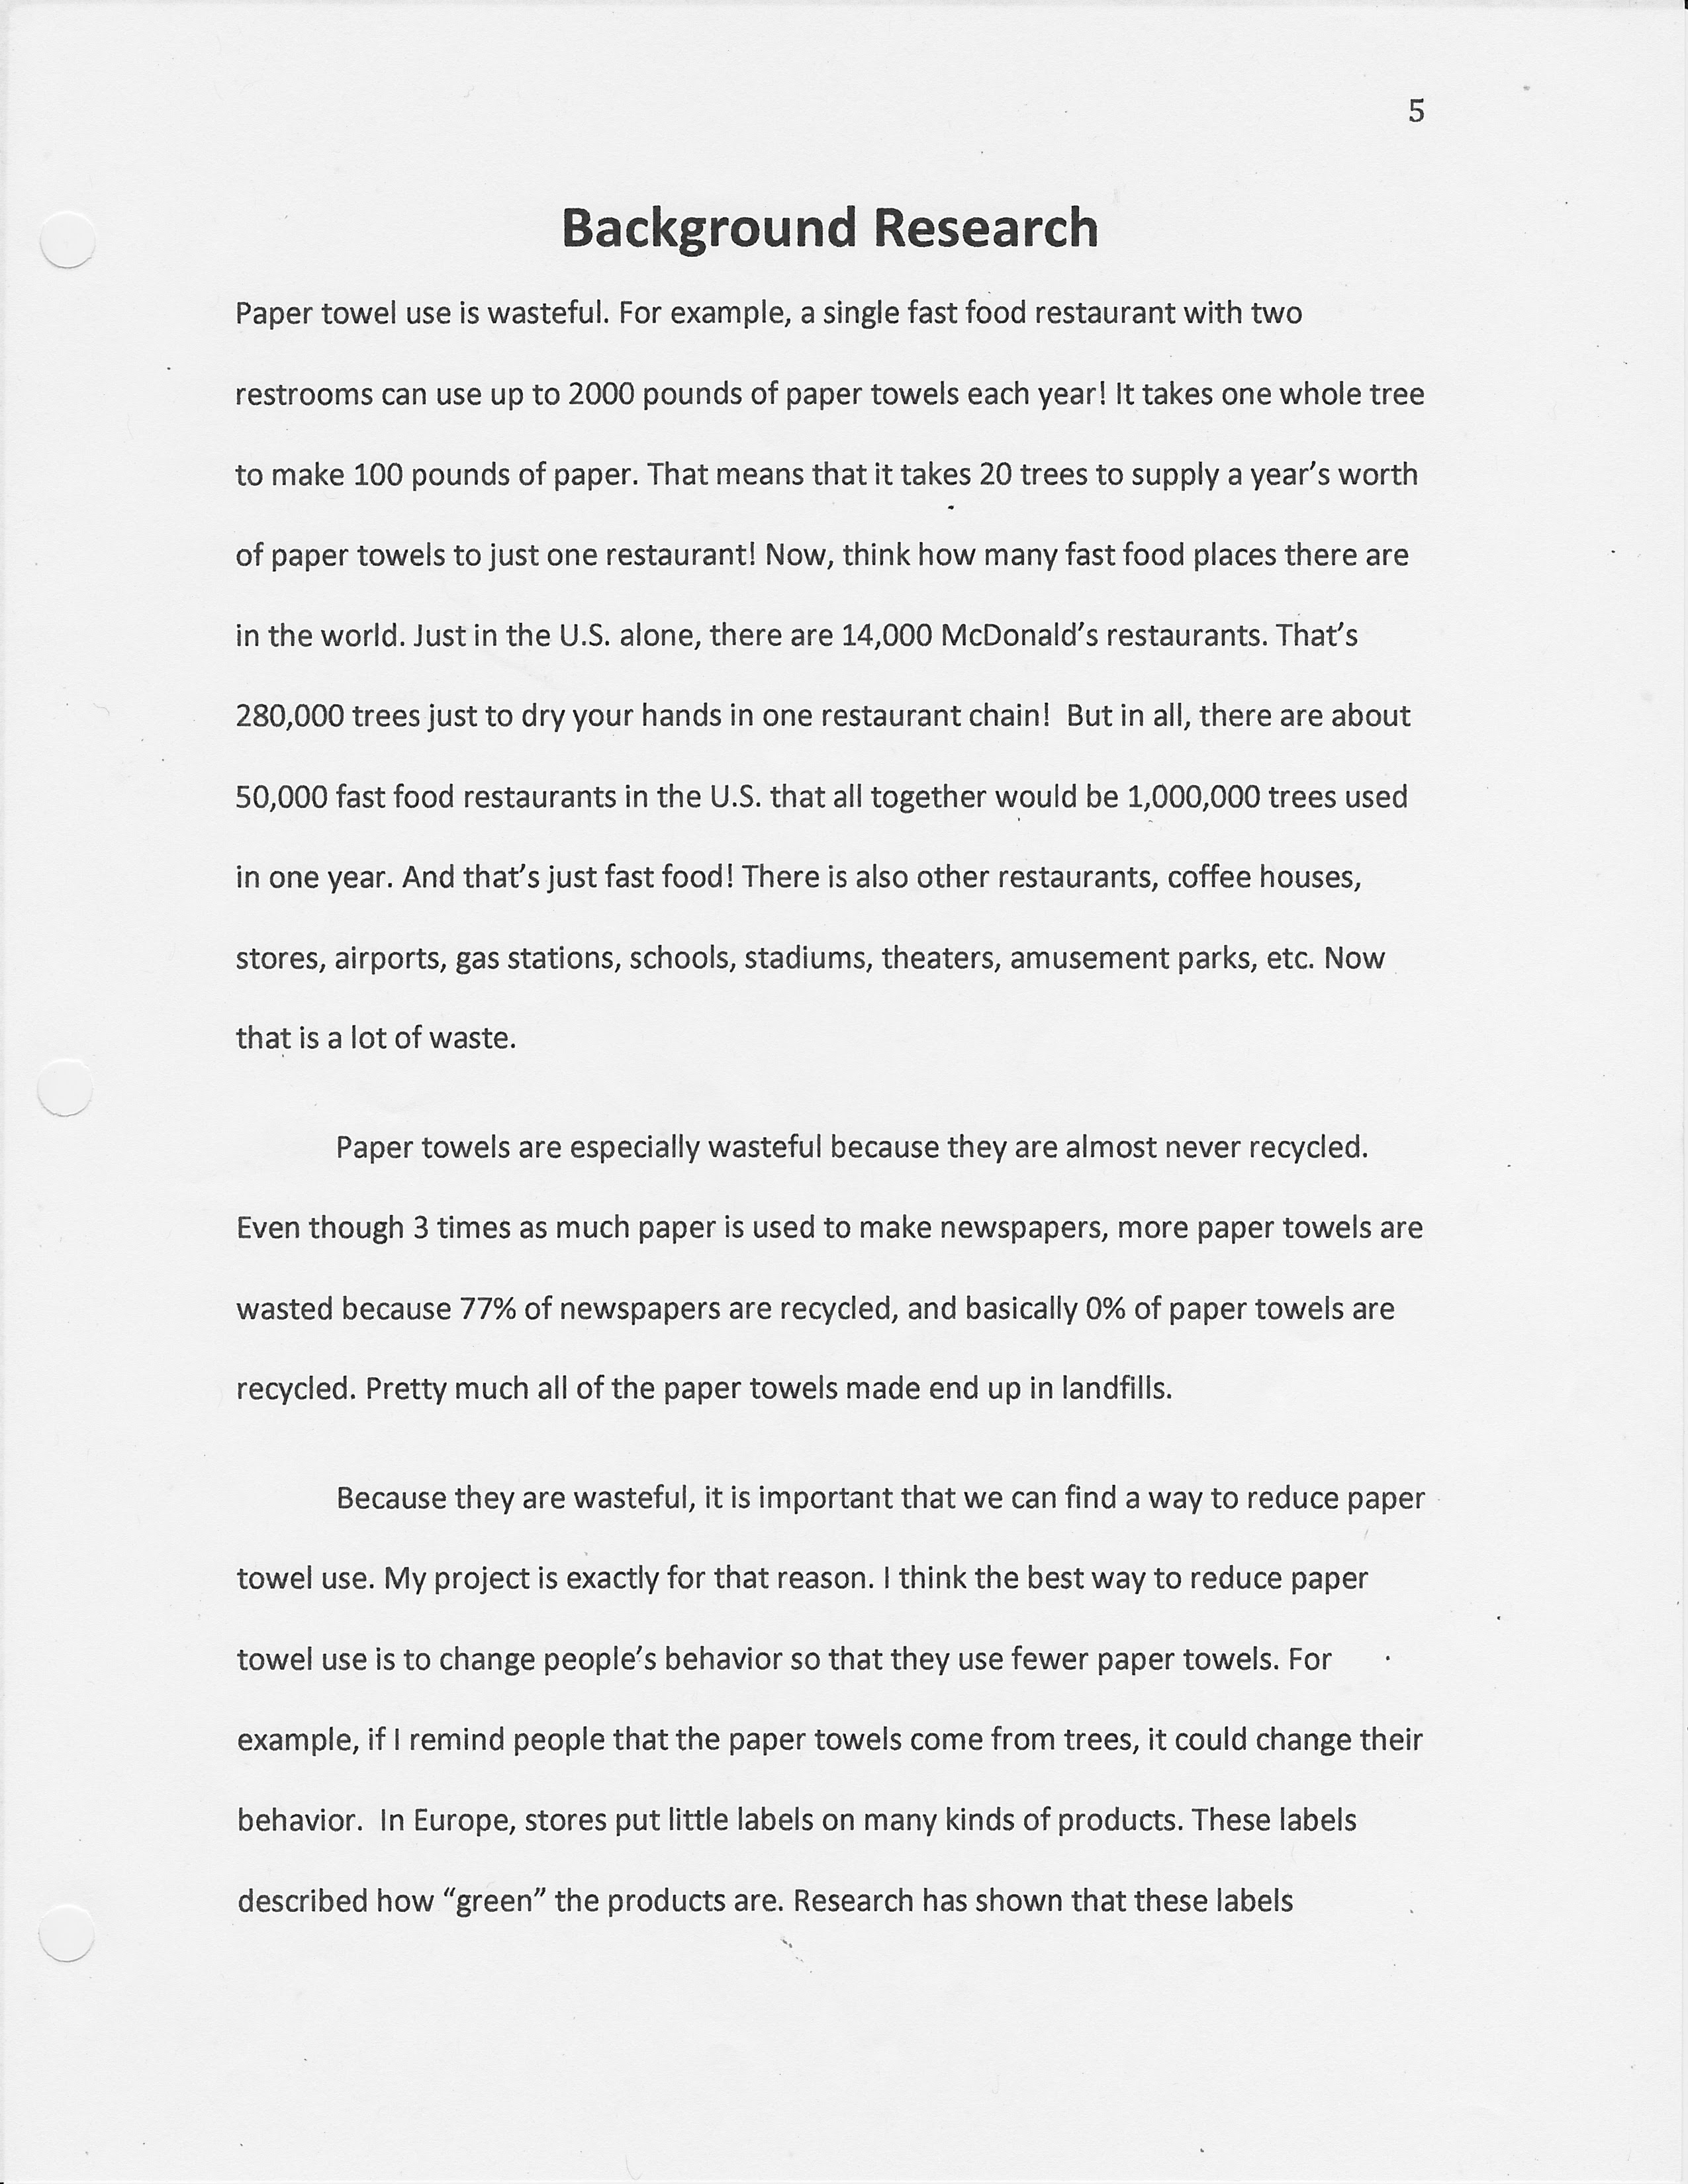 008 Research Paper Scn 0005heightu003d320u0026widthu003d247 Background Science Fair Breathtaking Example For How To Write A Full